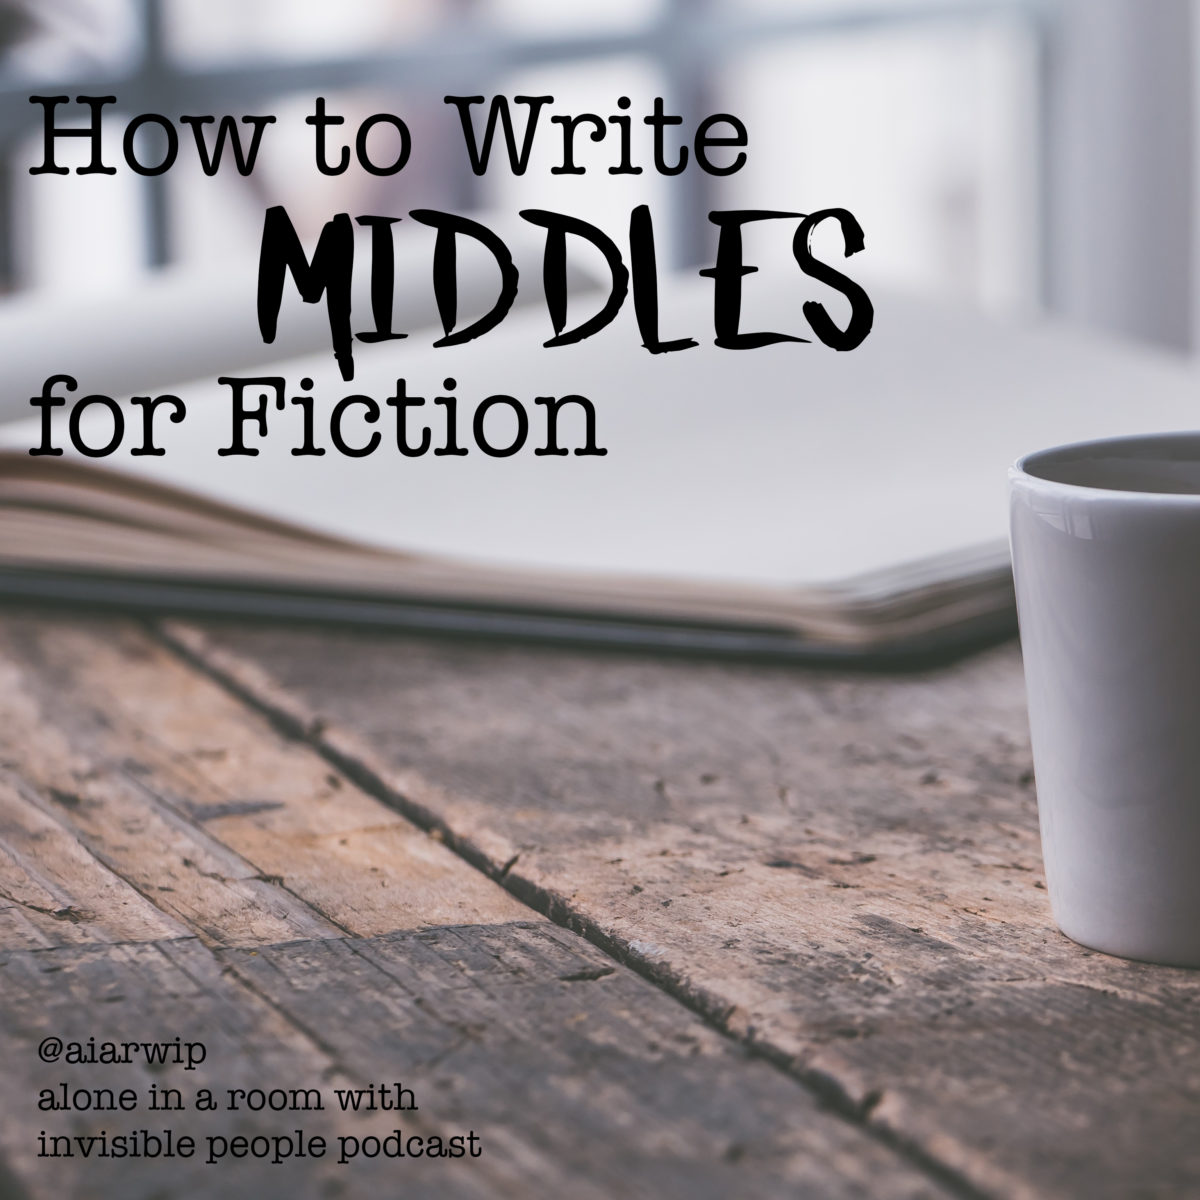 Episode 44: How to Write Middles for Fiction